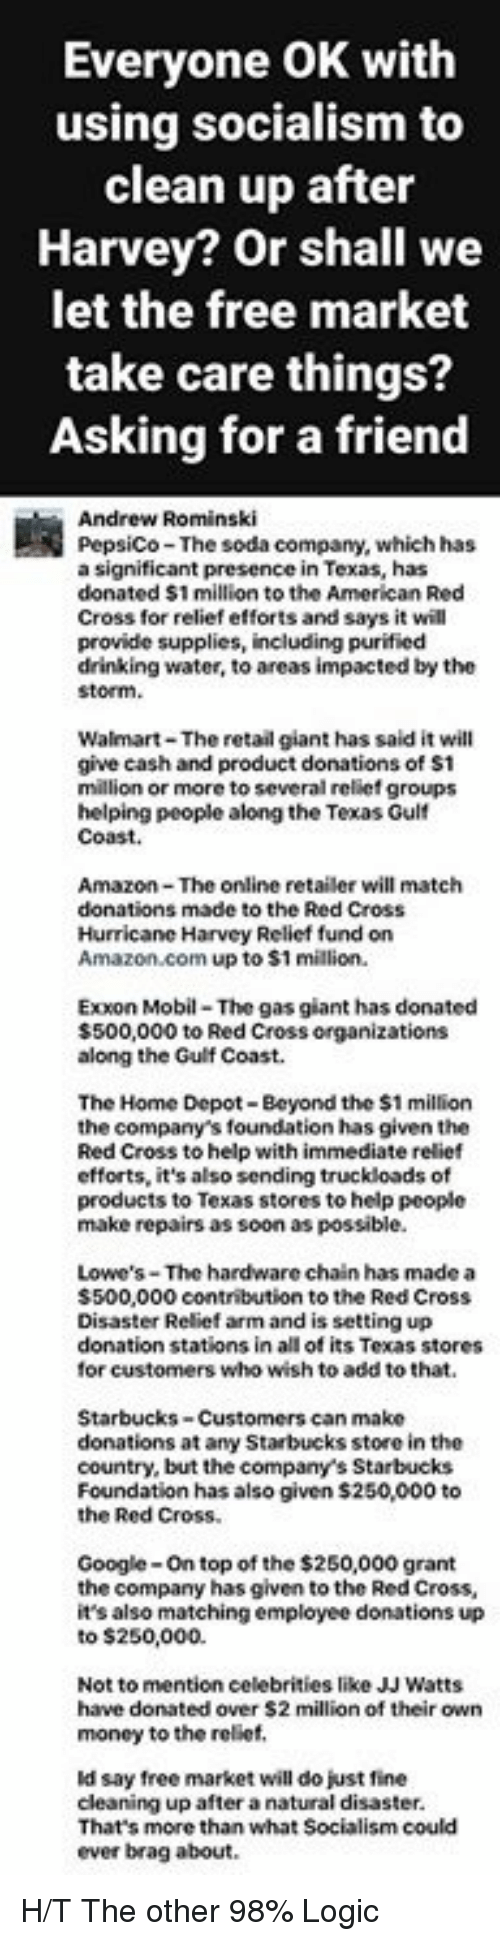 Amazon, Google, and Logic: Everyone OK with  using socialism to  clean up after  Harvey? Or shall we  let the free market  take care things?  Asking for a friend  Andrew Rominski  PepsiCo-The soda company, which has  a significant presence in Texas, has  donated $1 million to the American Red  Cross for relief efforts and says it will  provide supplies, including purified  豳;  king water, to areas impacted by the  Walmart The retail giant has said it will  e cash and product donations of $1  million or more to several reliet groups  lping people along the Texas Gult  Coast.  Amazon-The online retailer will match  donations made to the Red Cross  Hurricane Harvey Relief fund on  Amazon.com up to $1 million.  xxon Mobil The gas giant has donated  $500,000 to Red Cross organizations  along the Gulf Coast  the company's foundation has given the  Red Cross to help with immediate relief  efforts, it's also sending truckloads o  roducts to Texas stores to help people  ake repairs as soon as possible  Lowe's-The hardware chain has made a  $500,000 contribution to the Red Cross  Disaster Relief arm and is setting up  nation stations in all of its Texas stores  for customers who wish to add to that.  tarbucks-Customers can make  donations at any Starbucks store in the  country, but the company's Starbucks  Foundation has also given $250,000 to  the Red Cross  Google-On top of the $250,000 grant  he company has given to the Red Cross,  it's also matching employee donations up  to $250,000.  ot to mention celebrities like JJ Watts  have donated over $2 million of their own  money to the relief,  say free market will do just fine  cleaning up after a natural disaster.  That's more than what Socialism could  ever brag about H/T The other 98% Logic